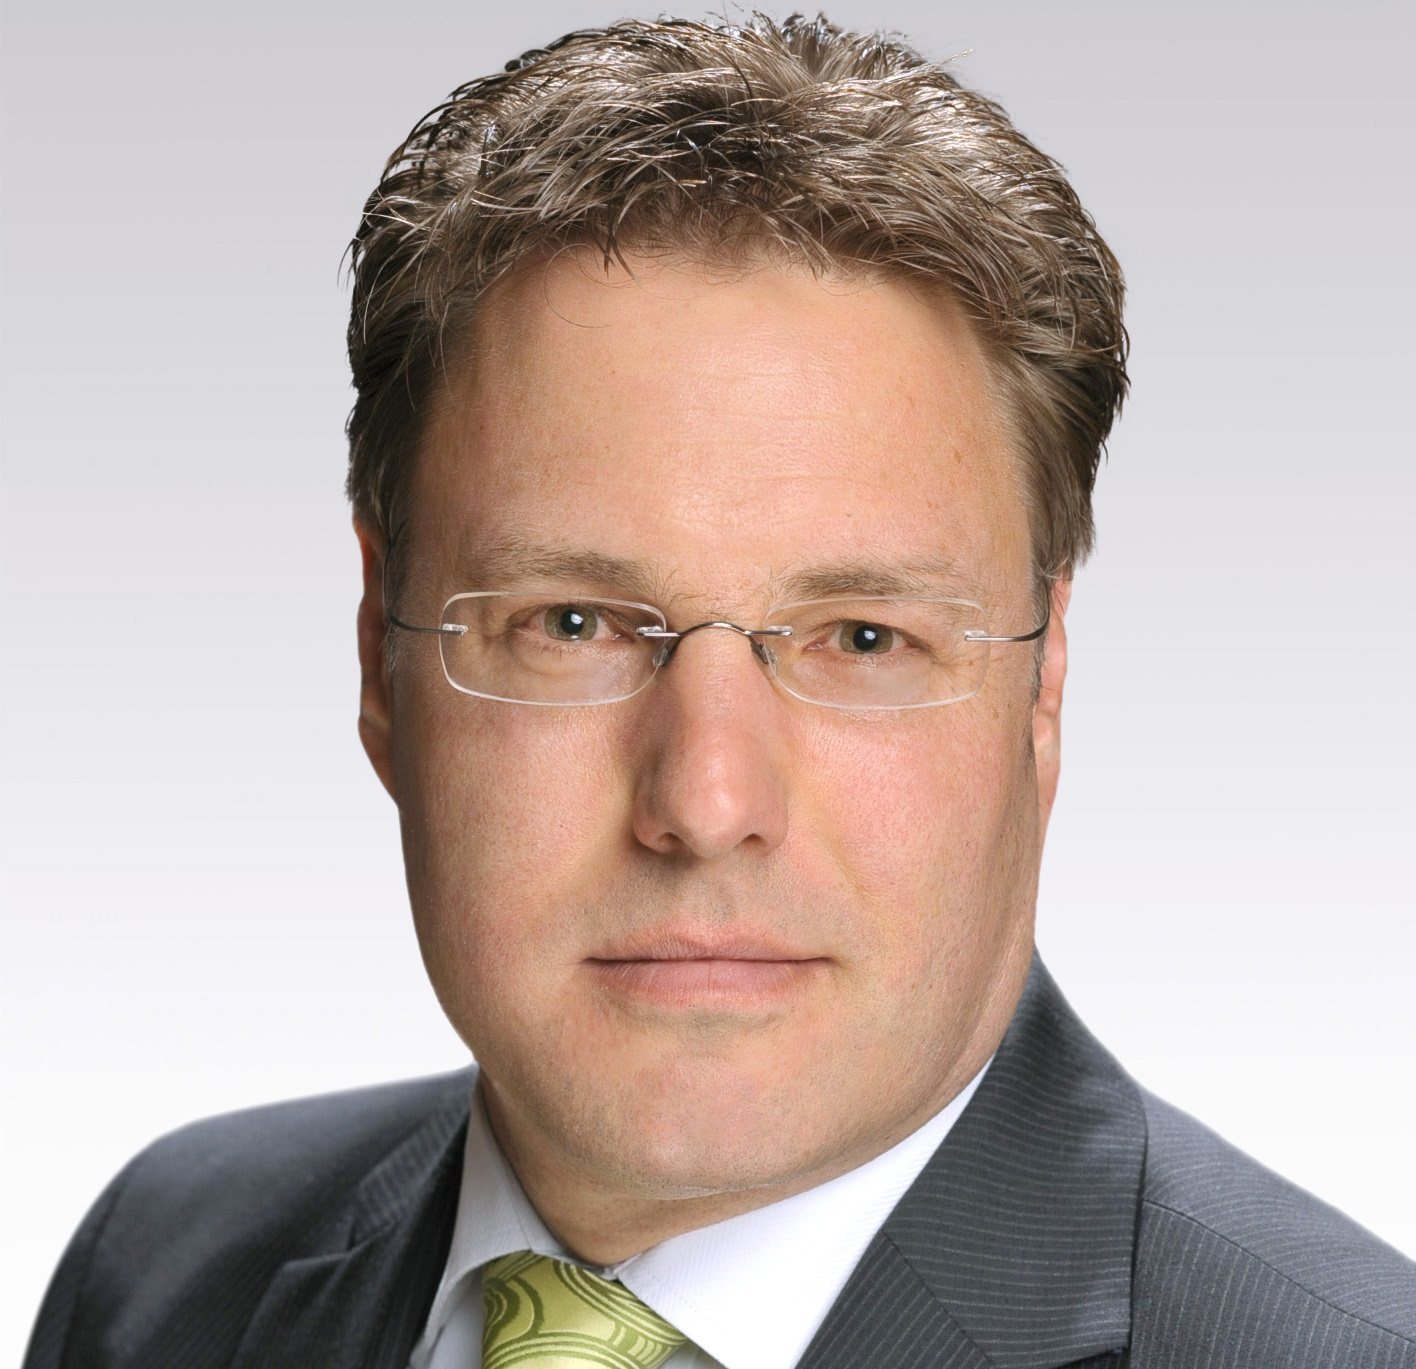 Maertin Christian Head of CorpCom Bayer c BayerAG